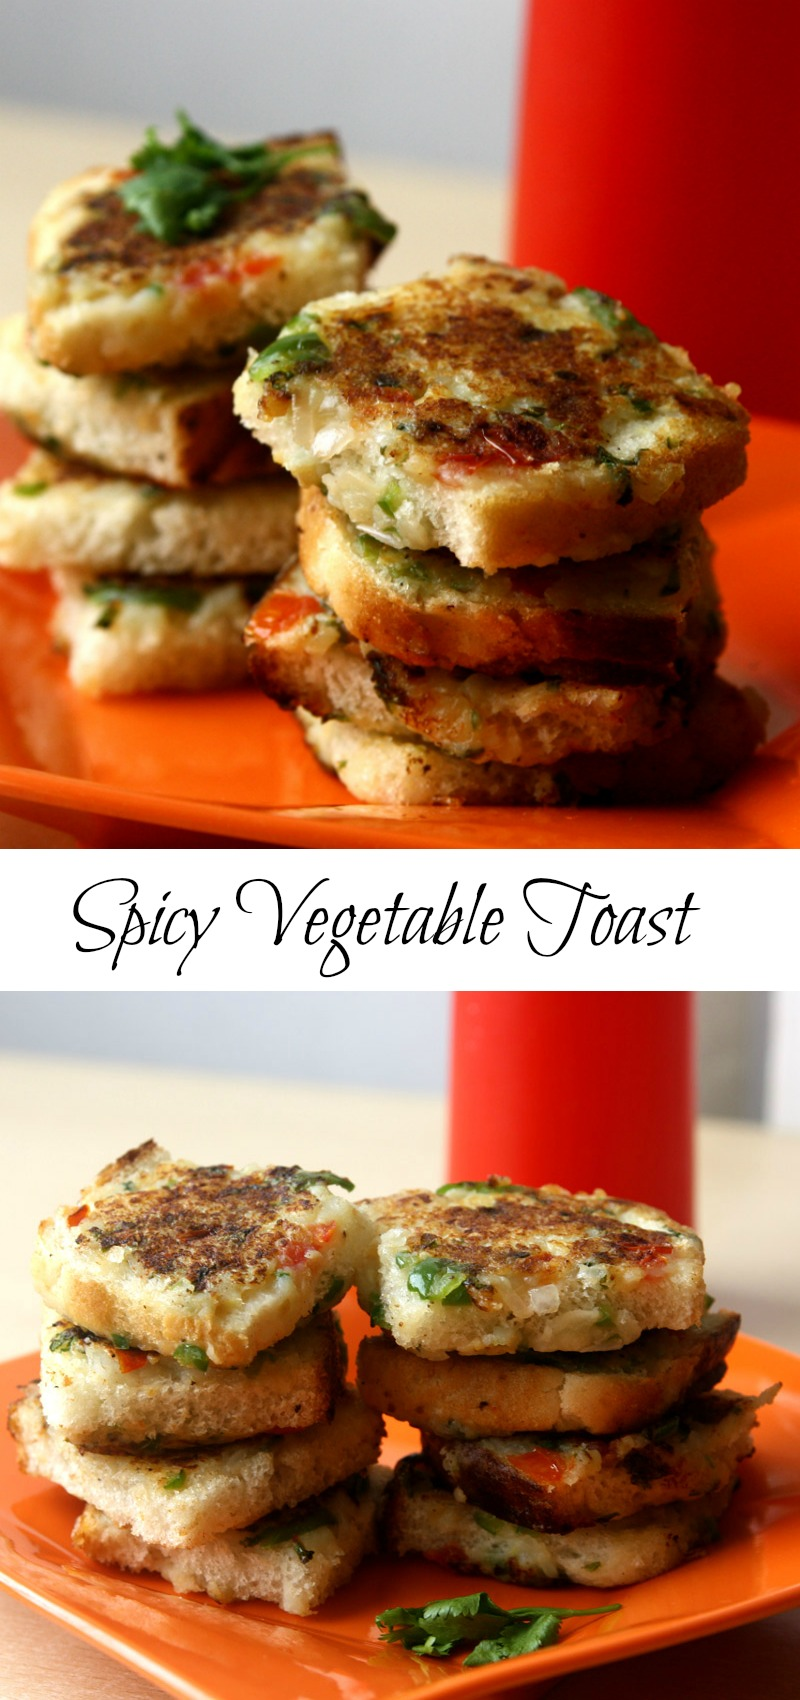 spicy vegetable toast - perfect for breakfast, kids school lunch box, tea time snack. Healthy vegetarian kid friendly recipe. #breakfast #vegetarian #schoollunchbox #tiffinrecipe #vegetables #healthy #healthychoice